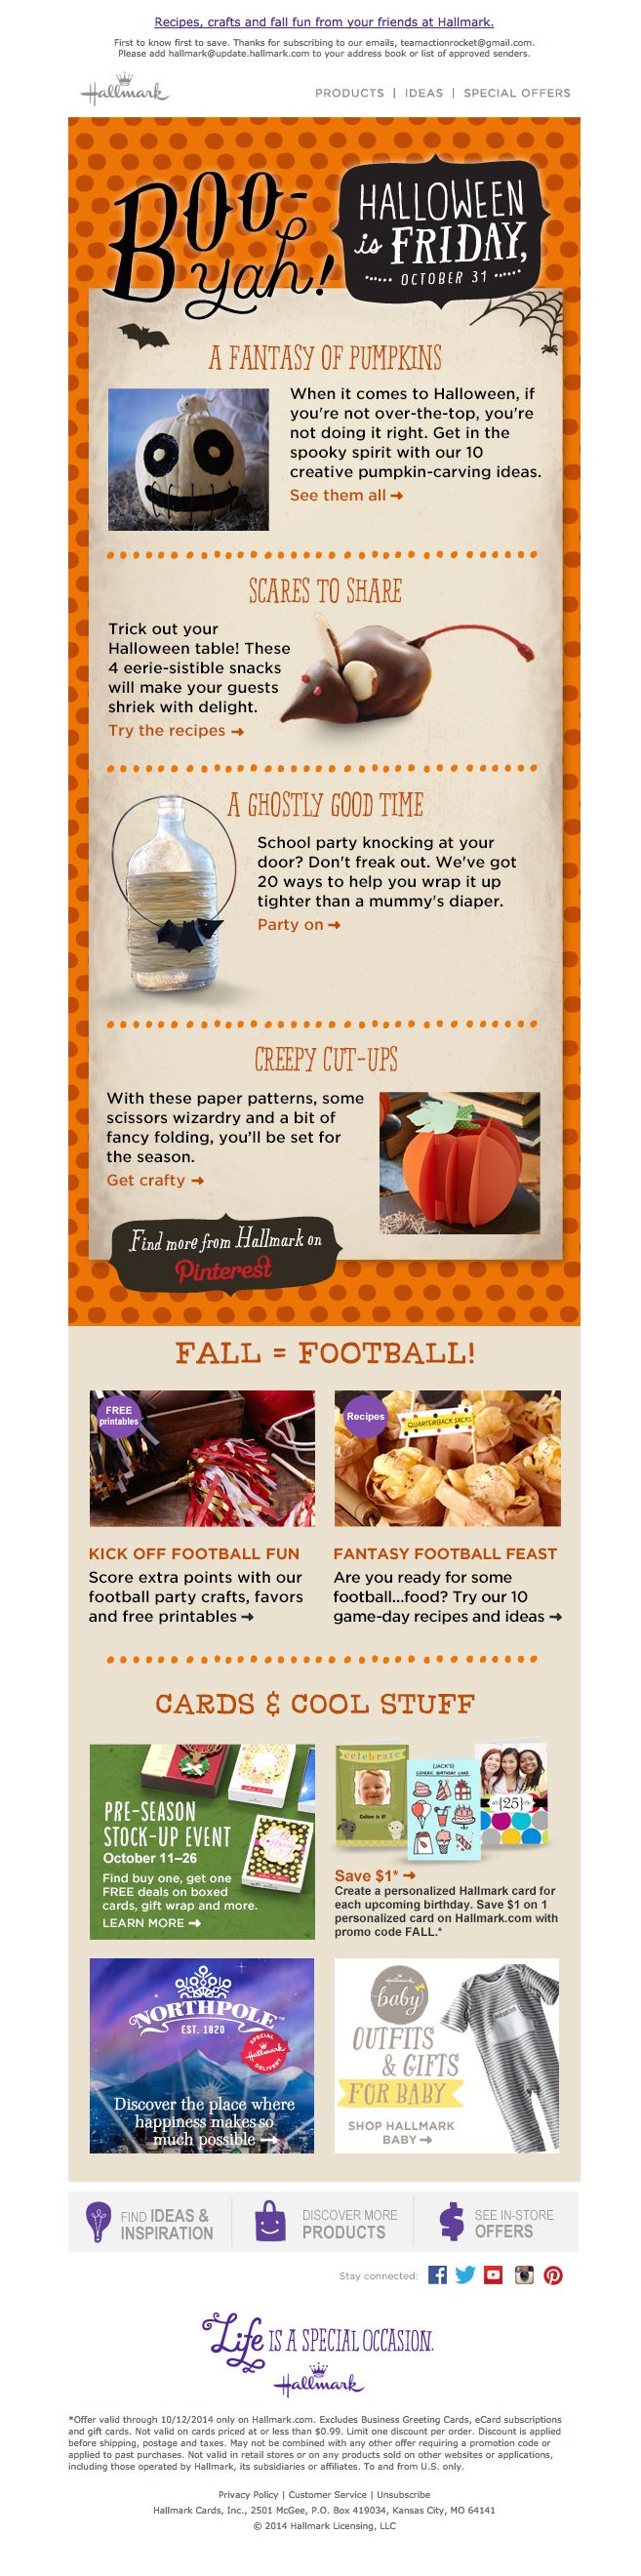 Hallmark email marketing design for Halloween